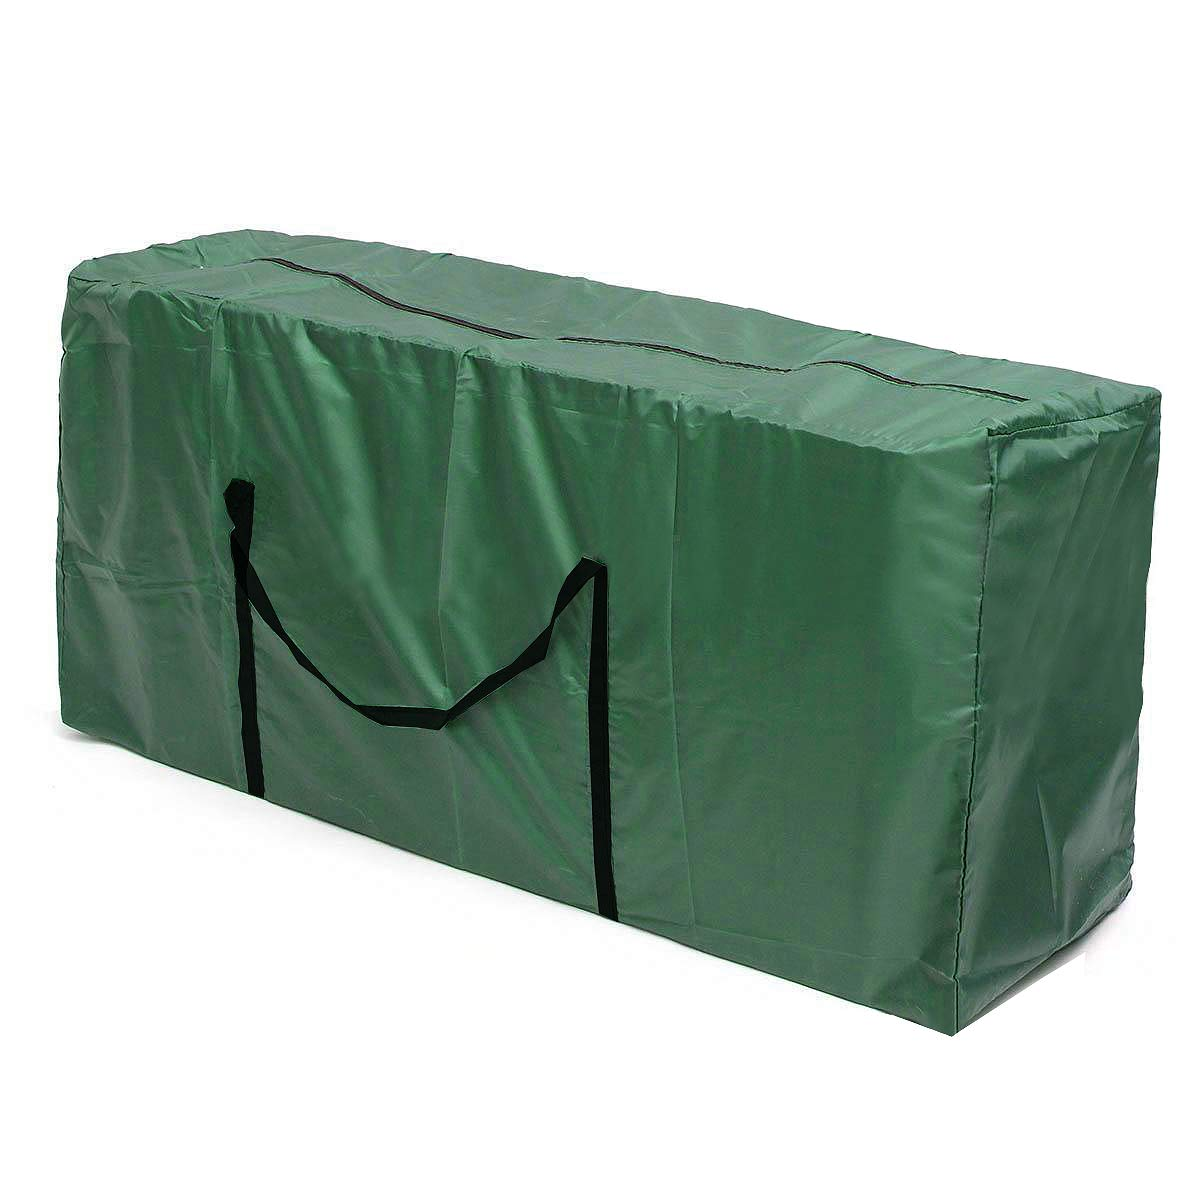 Sqoto Premium Green Christmas Tree Storage Bag Oxford Canvas Holiday Rolling Tree Storage Bag Heavy Duty Storage Container Fits Trees Up to 9 Foot Tall - 68'' x 20'' x 30''